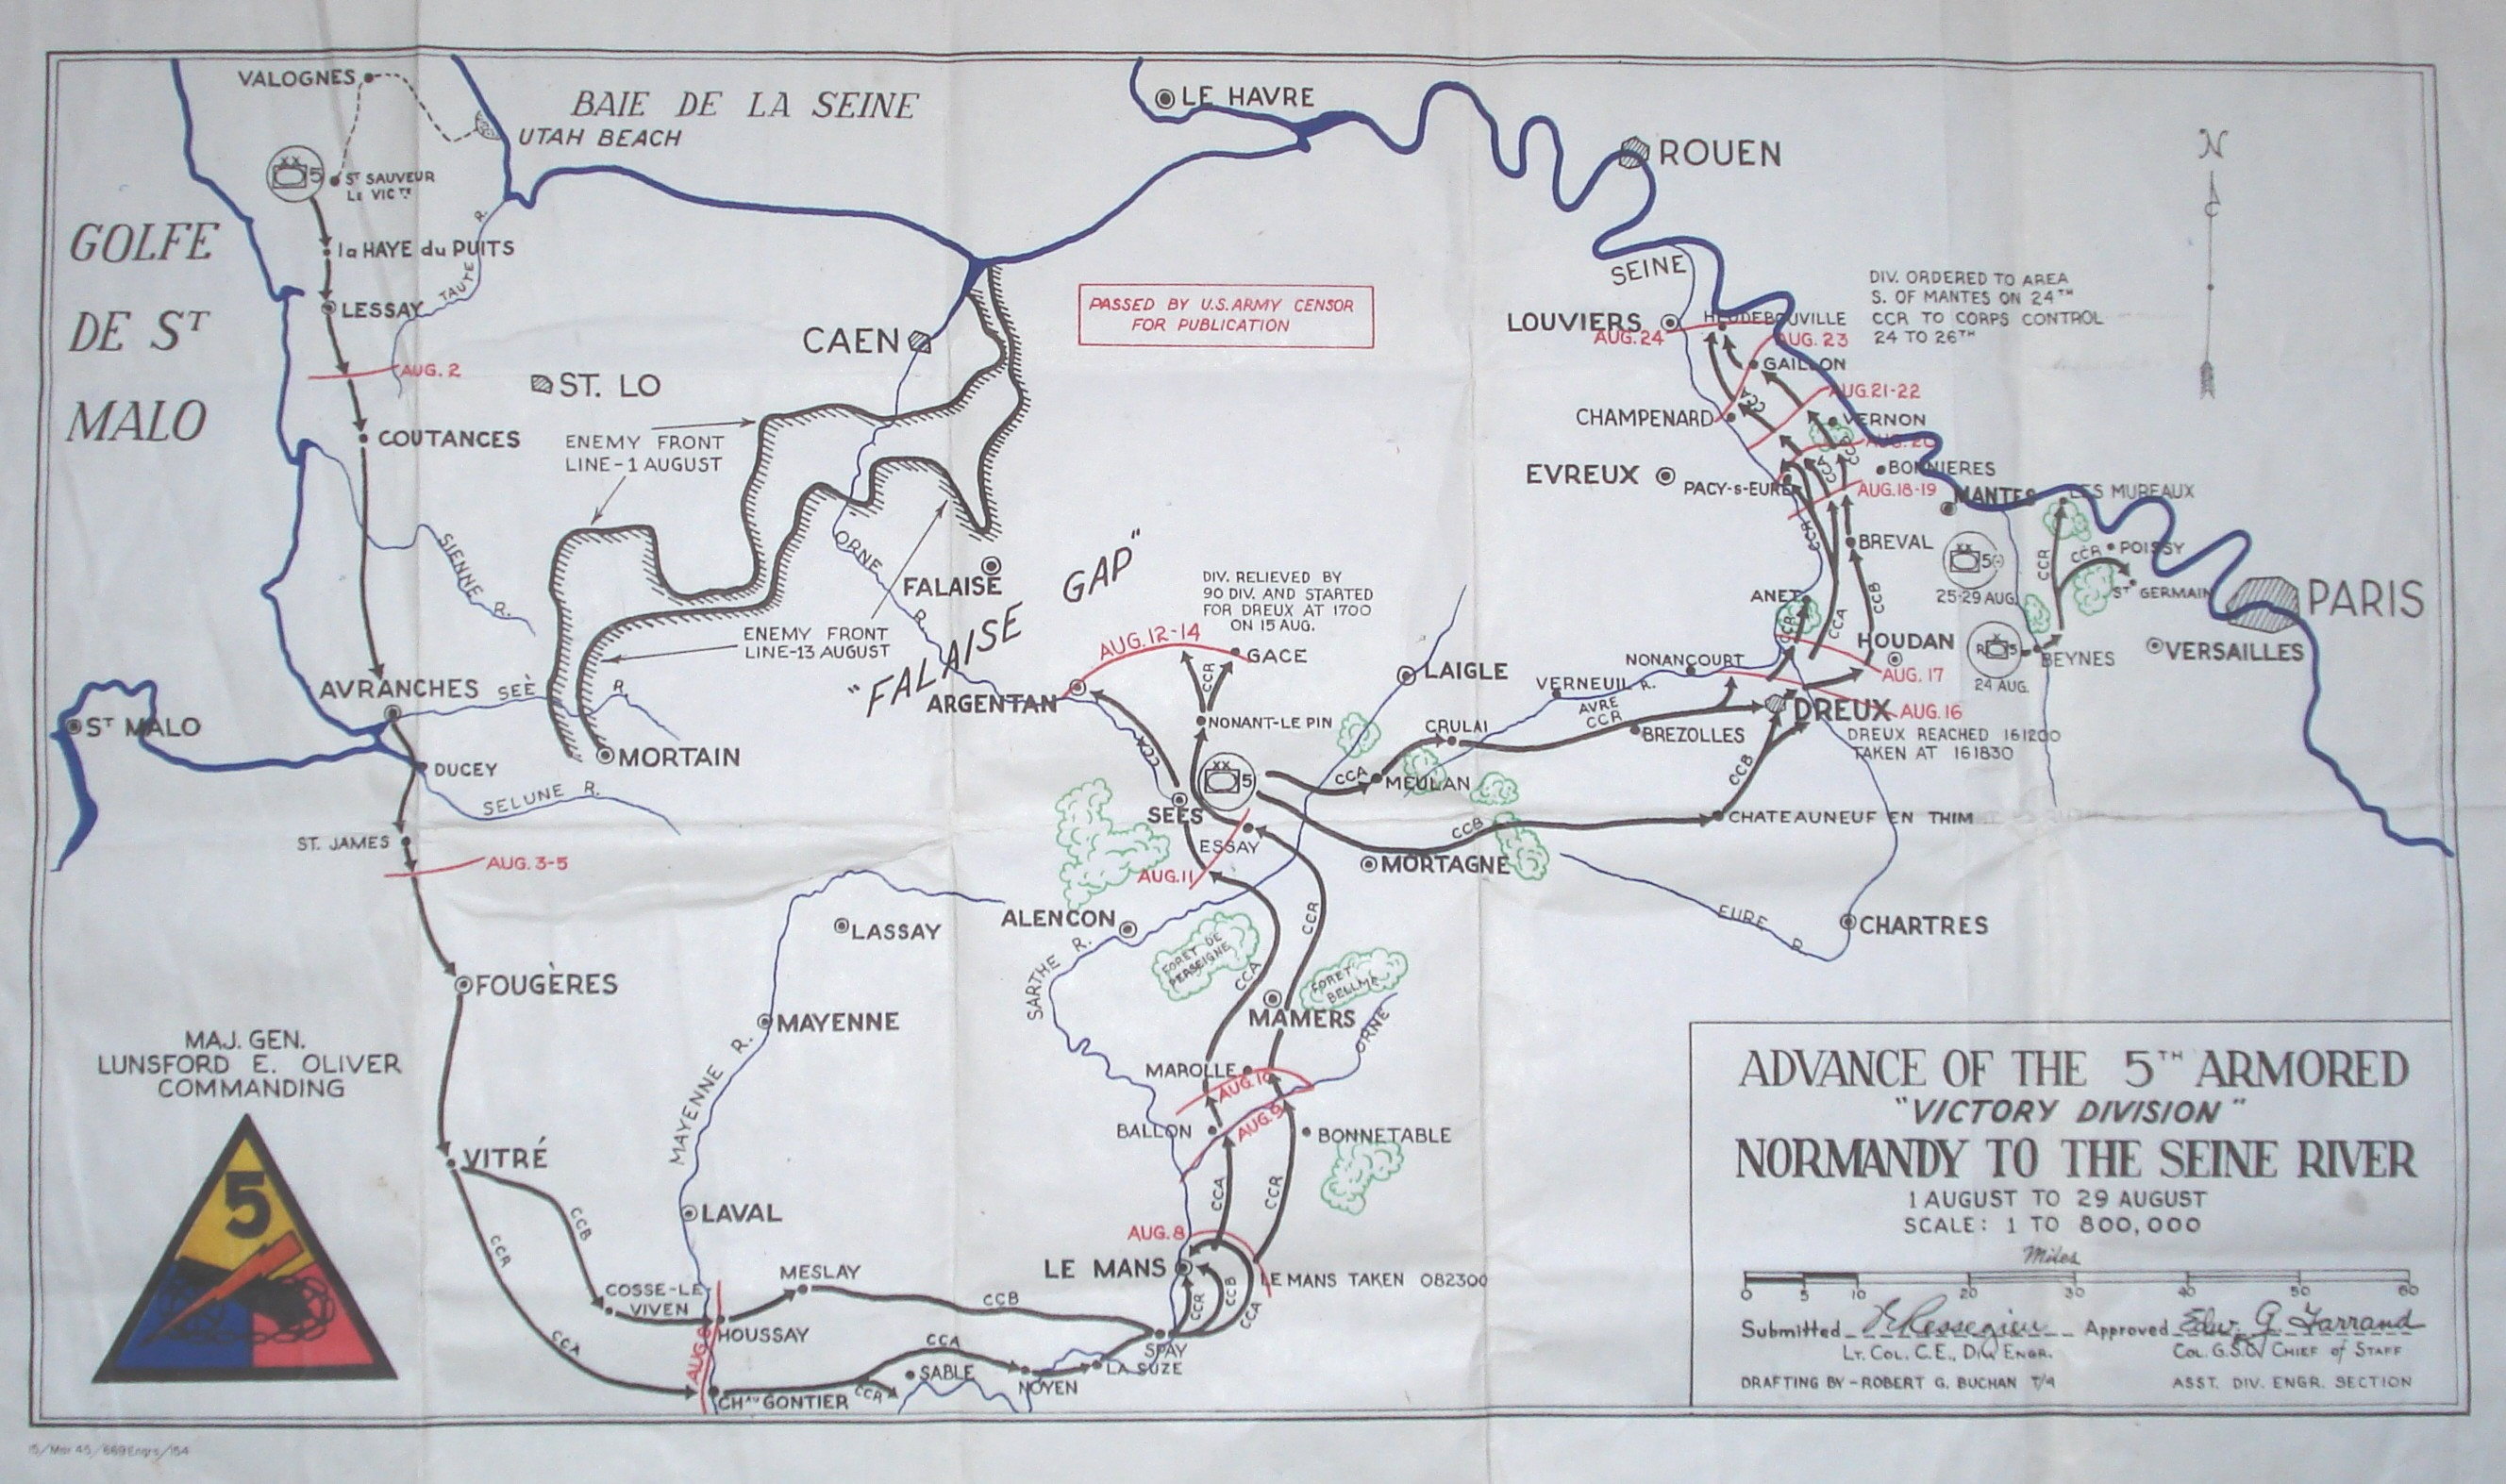 Trek of the 5th Armored Division from Normandy to the Seine River